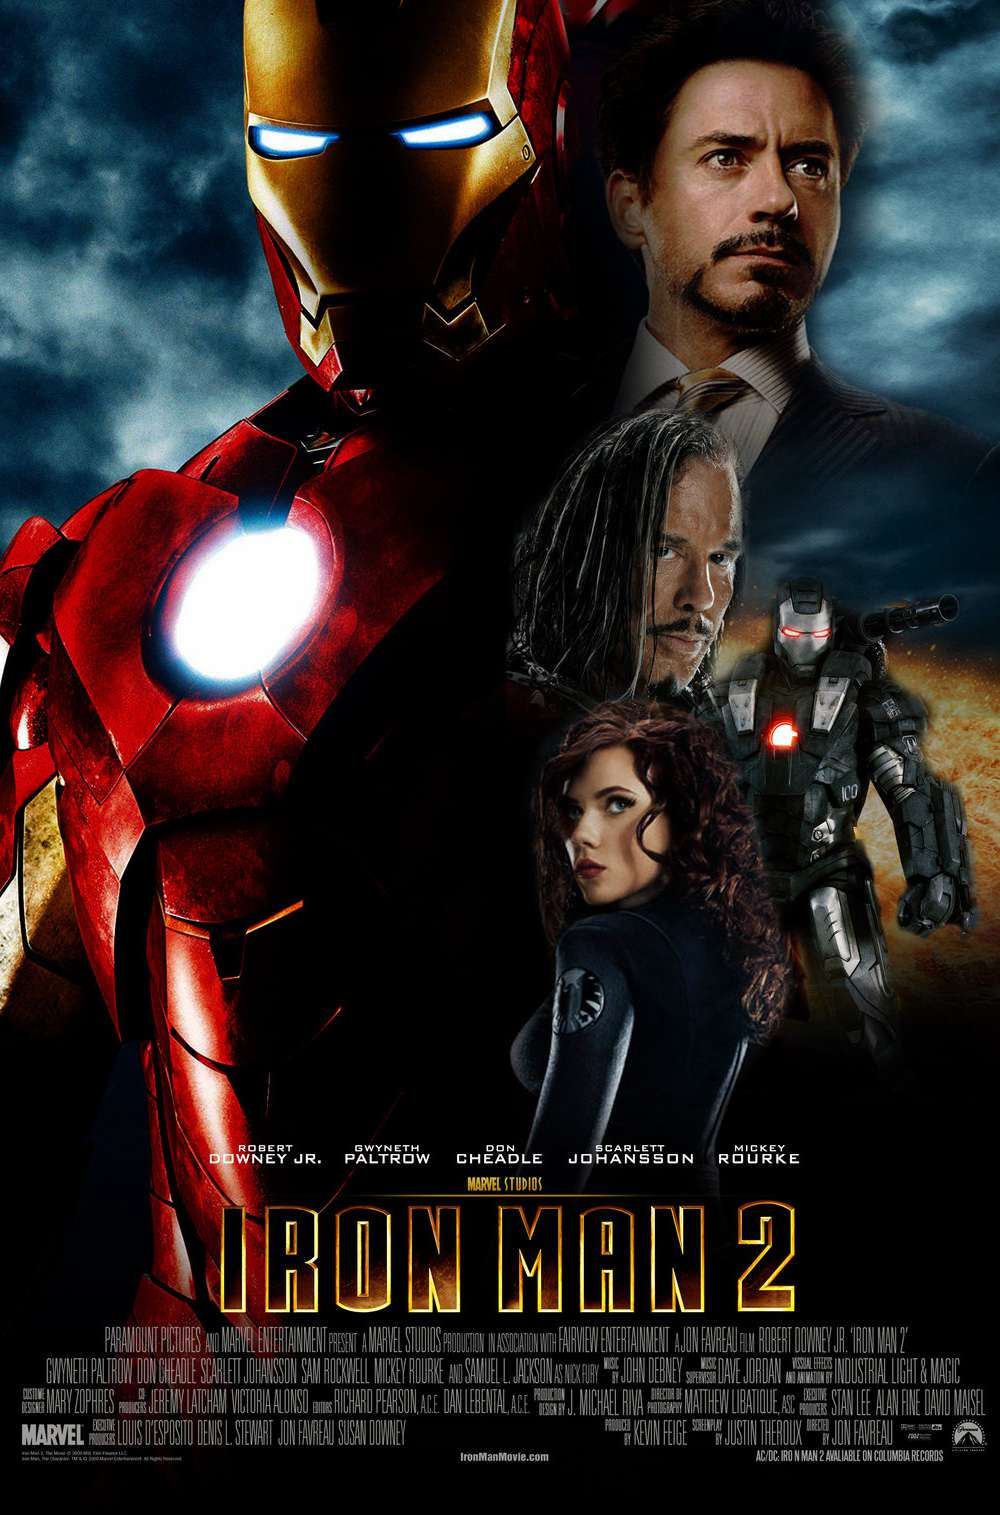 Poster for Iron Man 2 (2010)